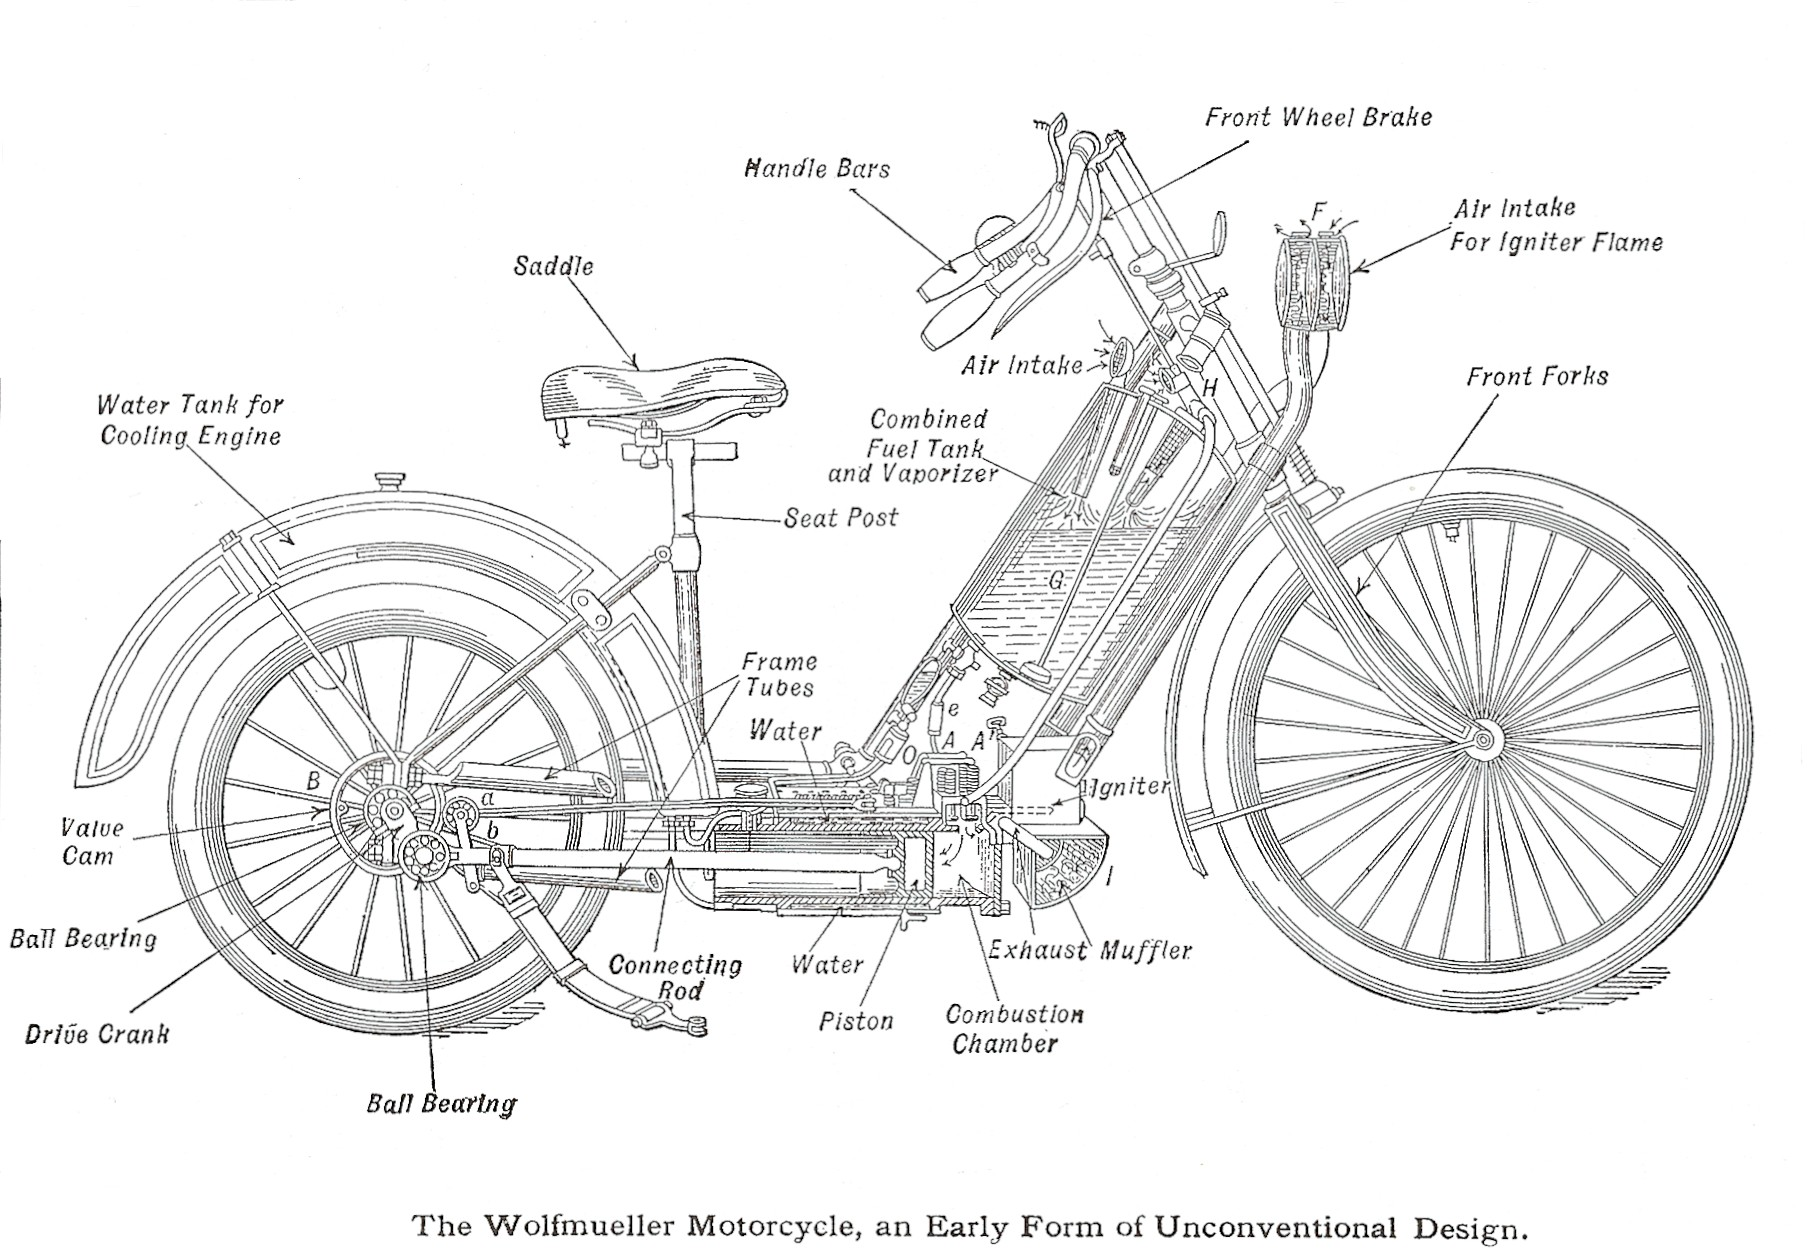 Car Engine Diagram and Explanation File 1894 Hildebrand & Wolfmüller Diagram Wikimedia Mons Of Car Engine Diagram and Explanation